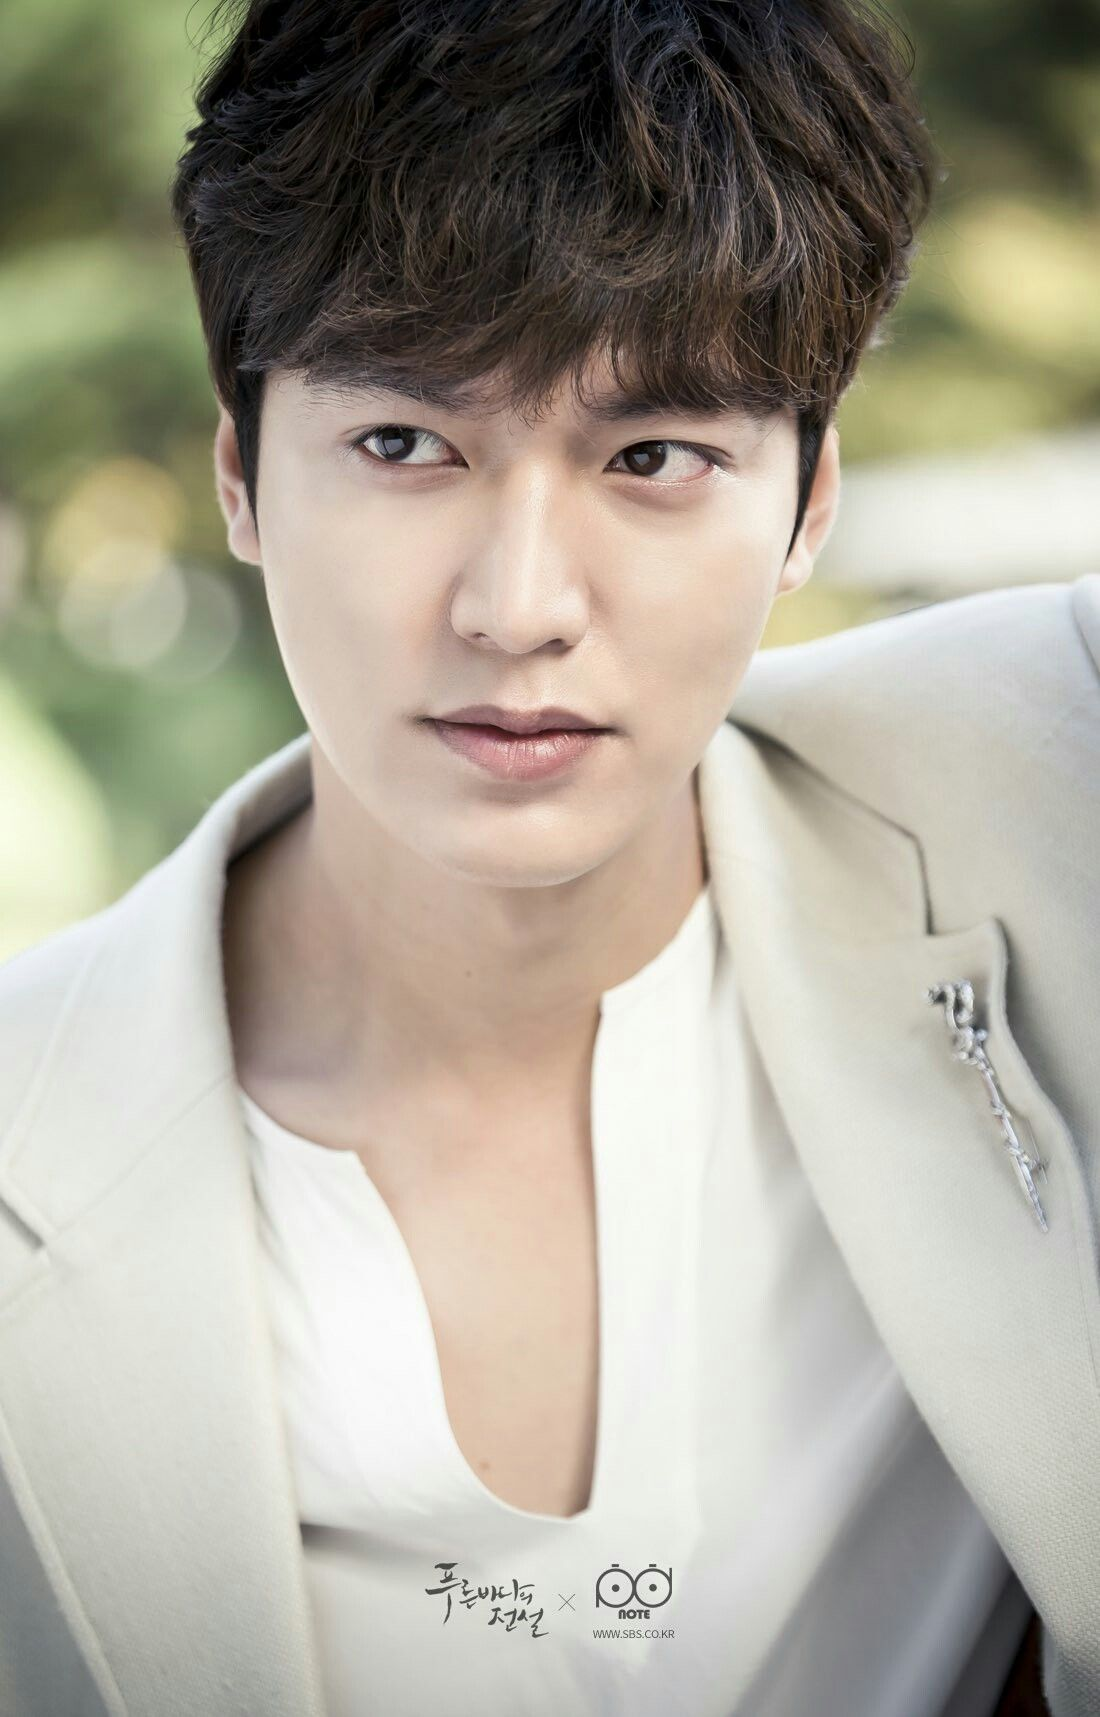 Ji Chang Wook Hd Wallpaper Legend Of The Blue Sea Lee Min Ho Pinterest Lee Min